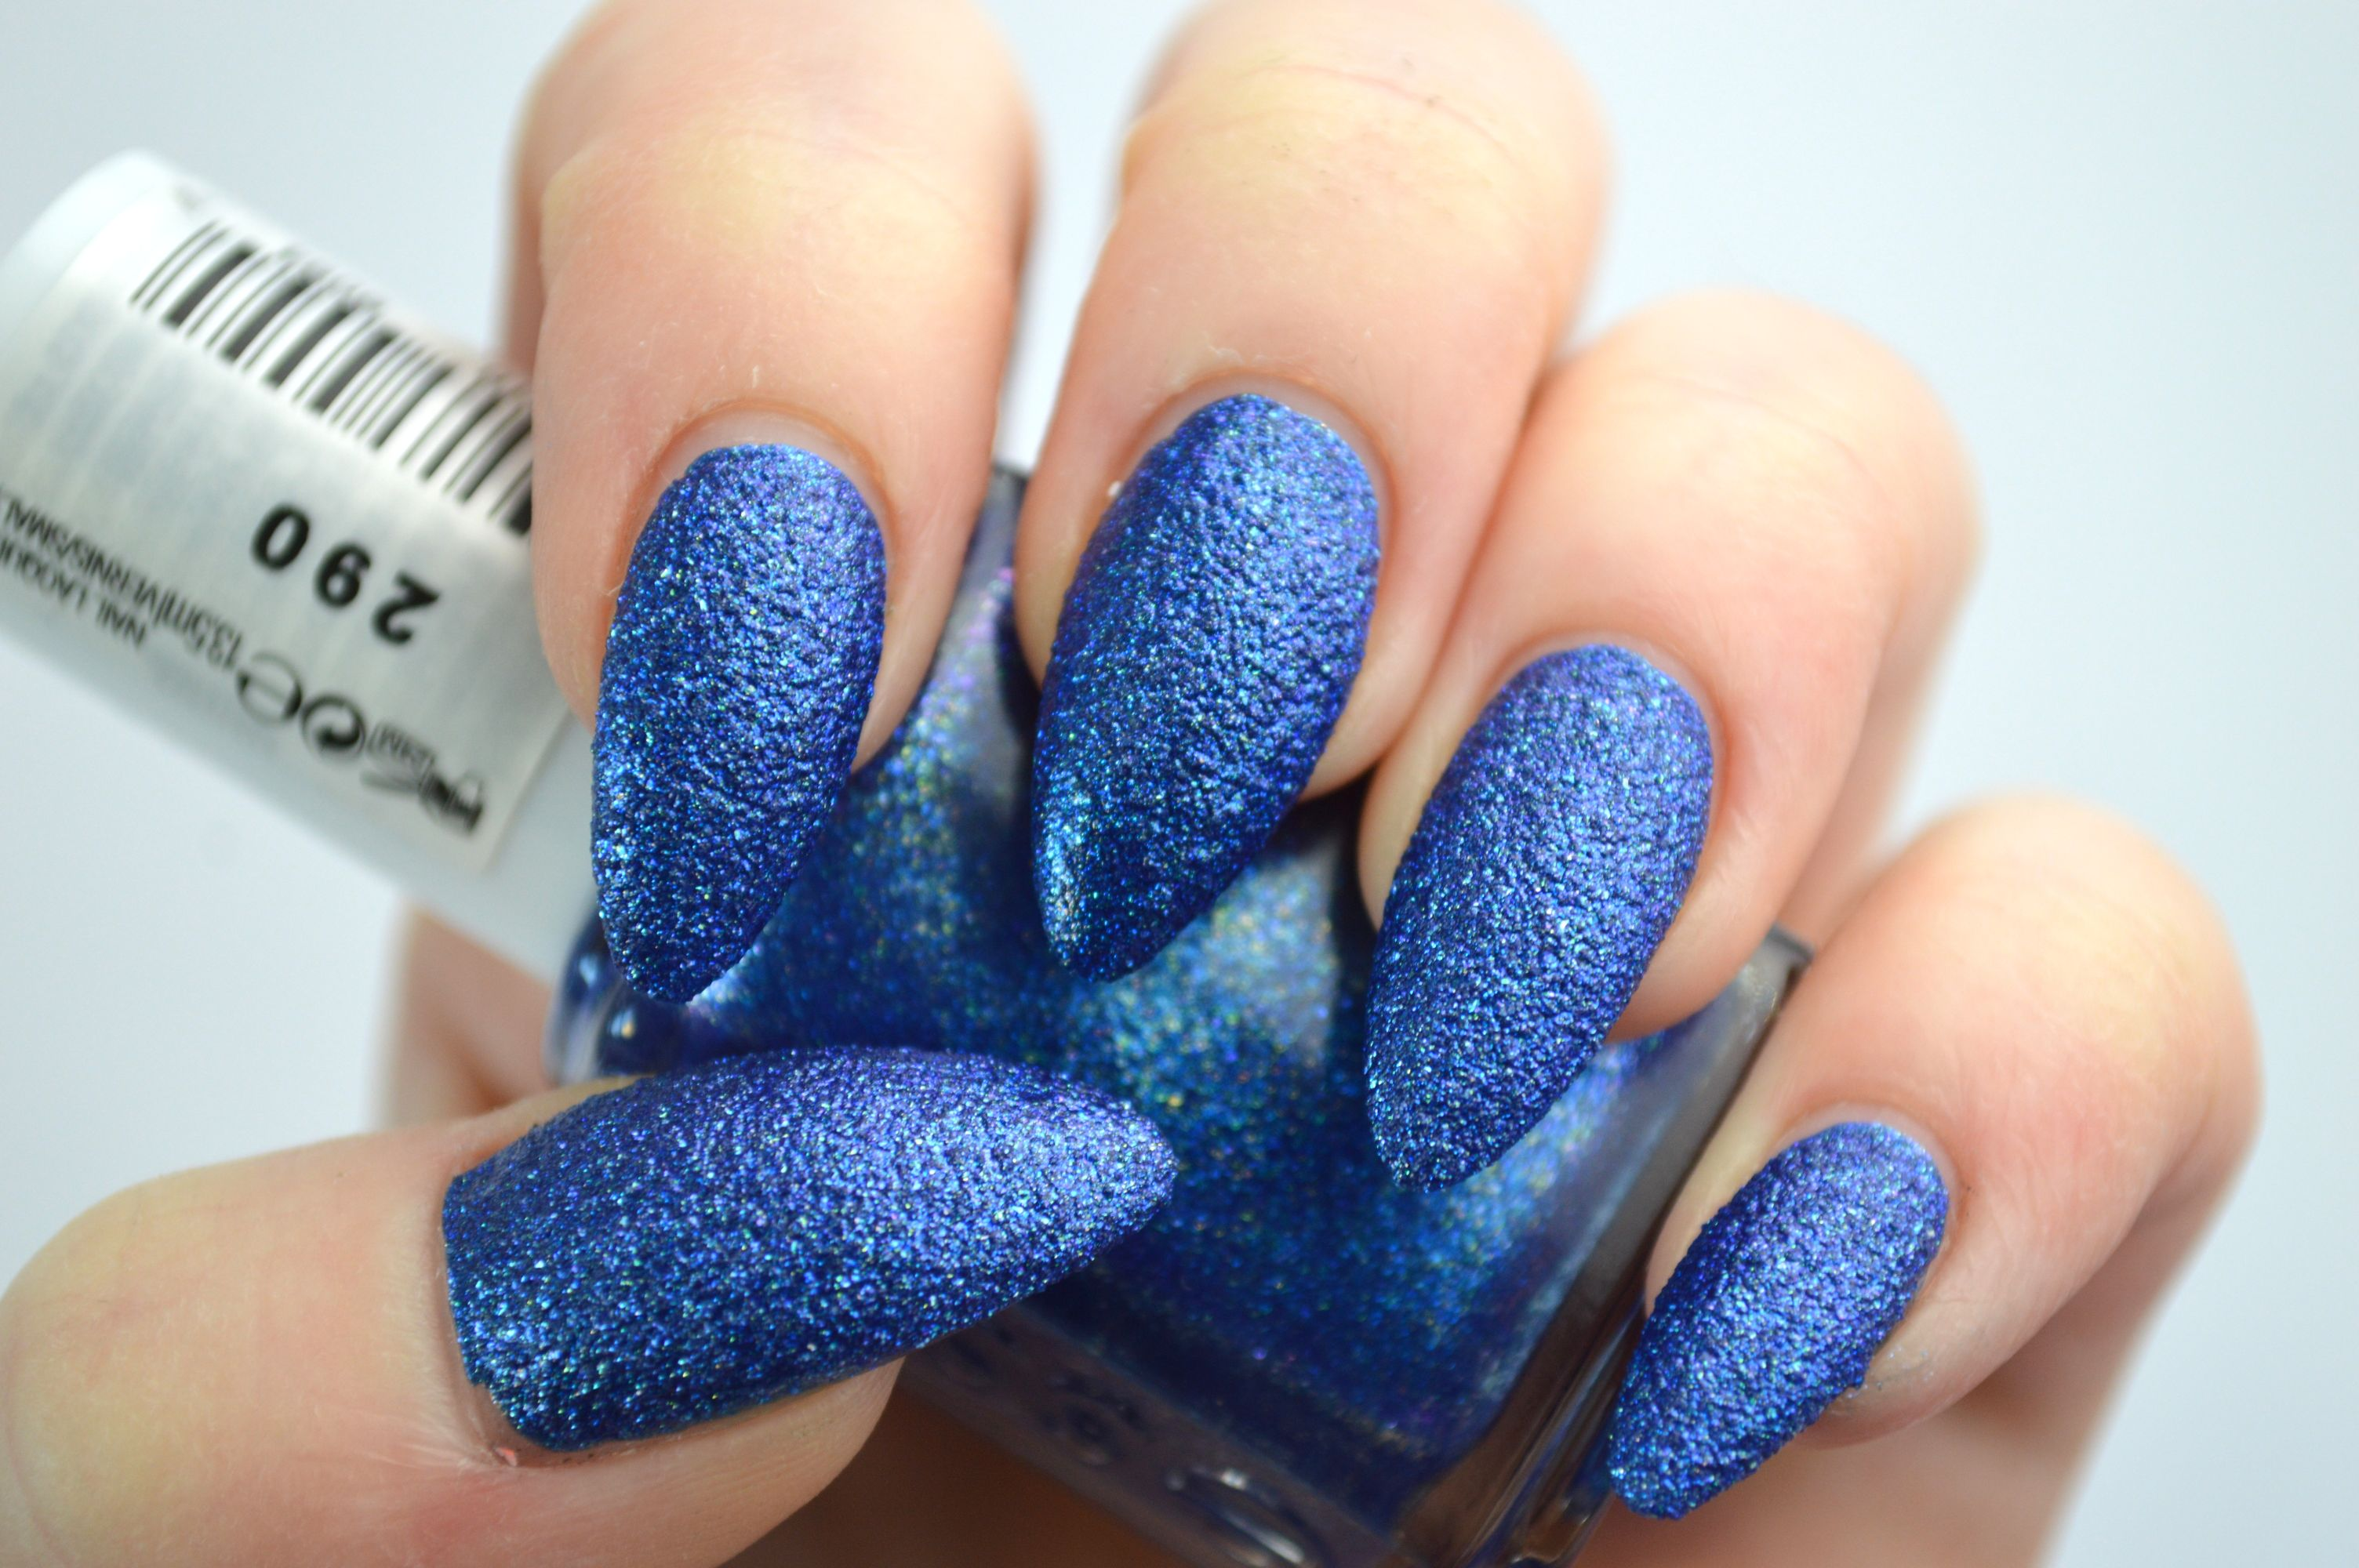 Essie_Lots_of_Lux_Review